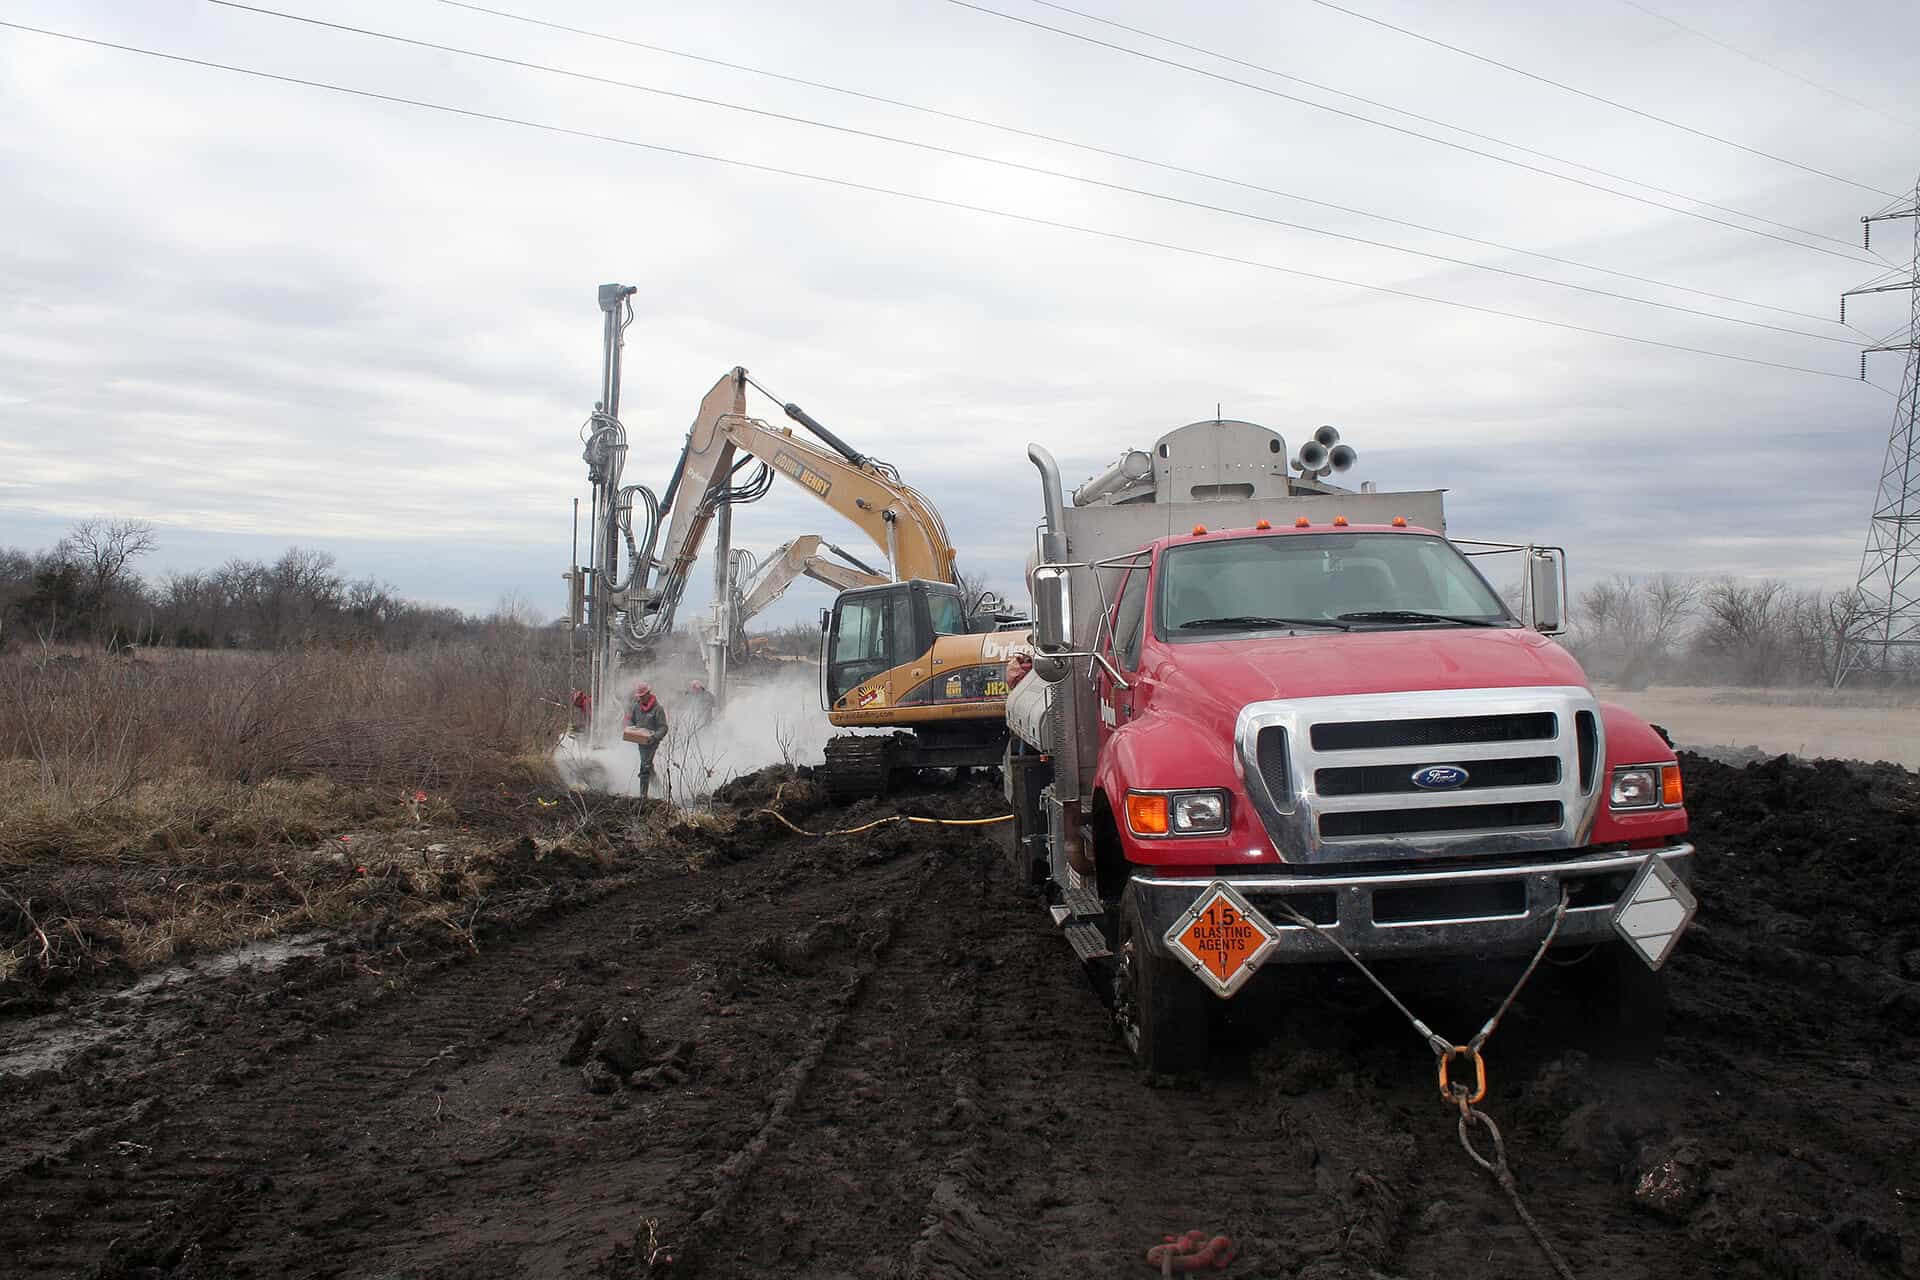 North Sewer Interceptor Utility Drilling and Blasting